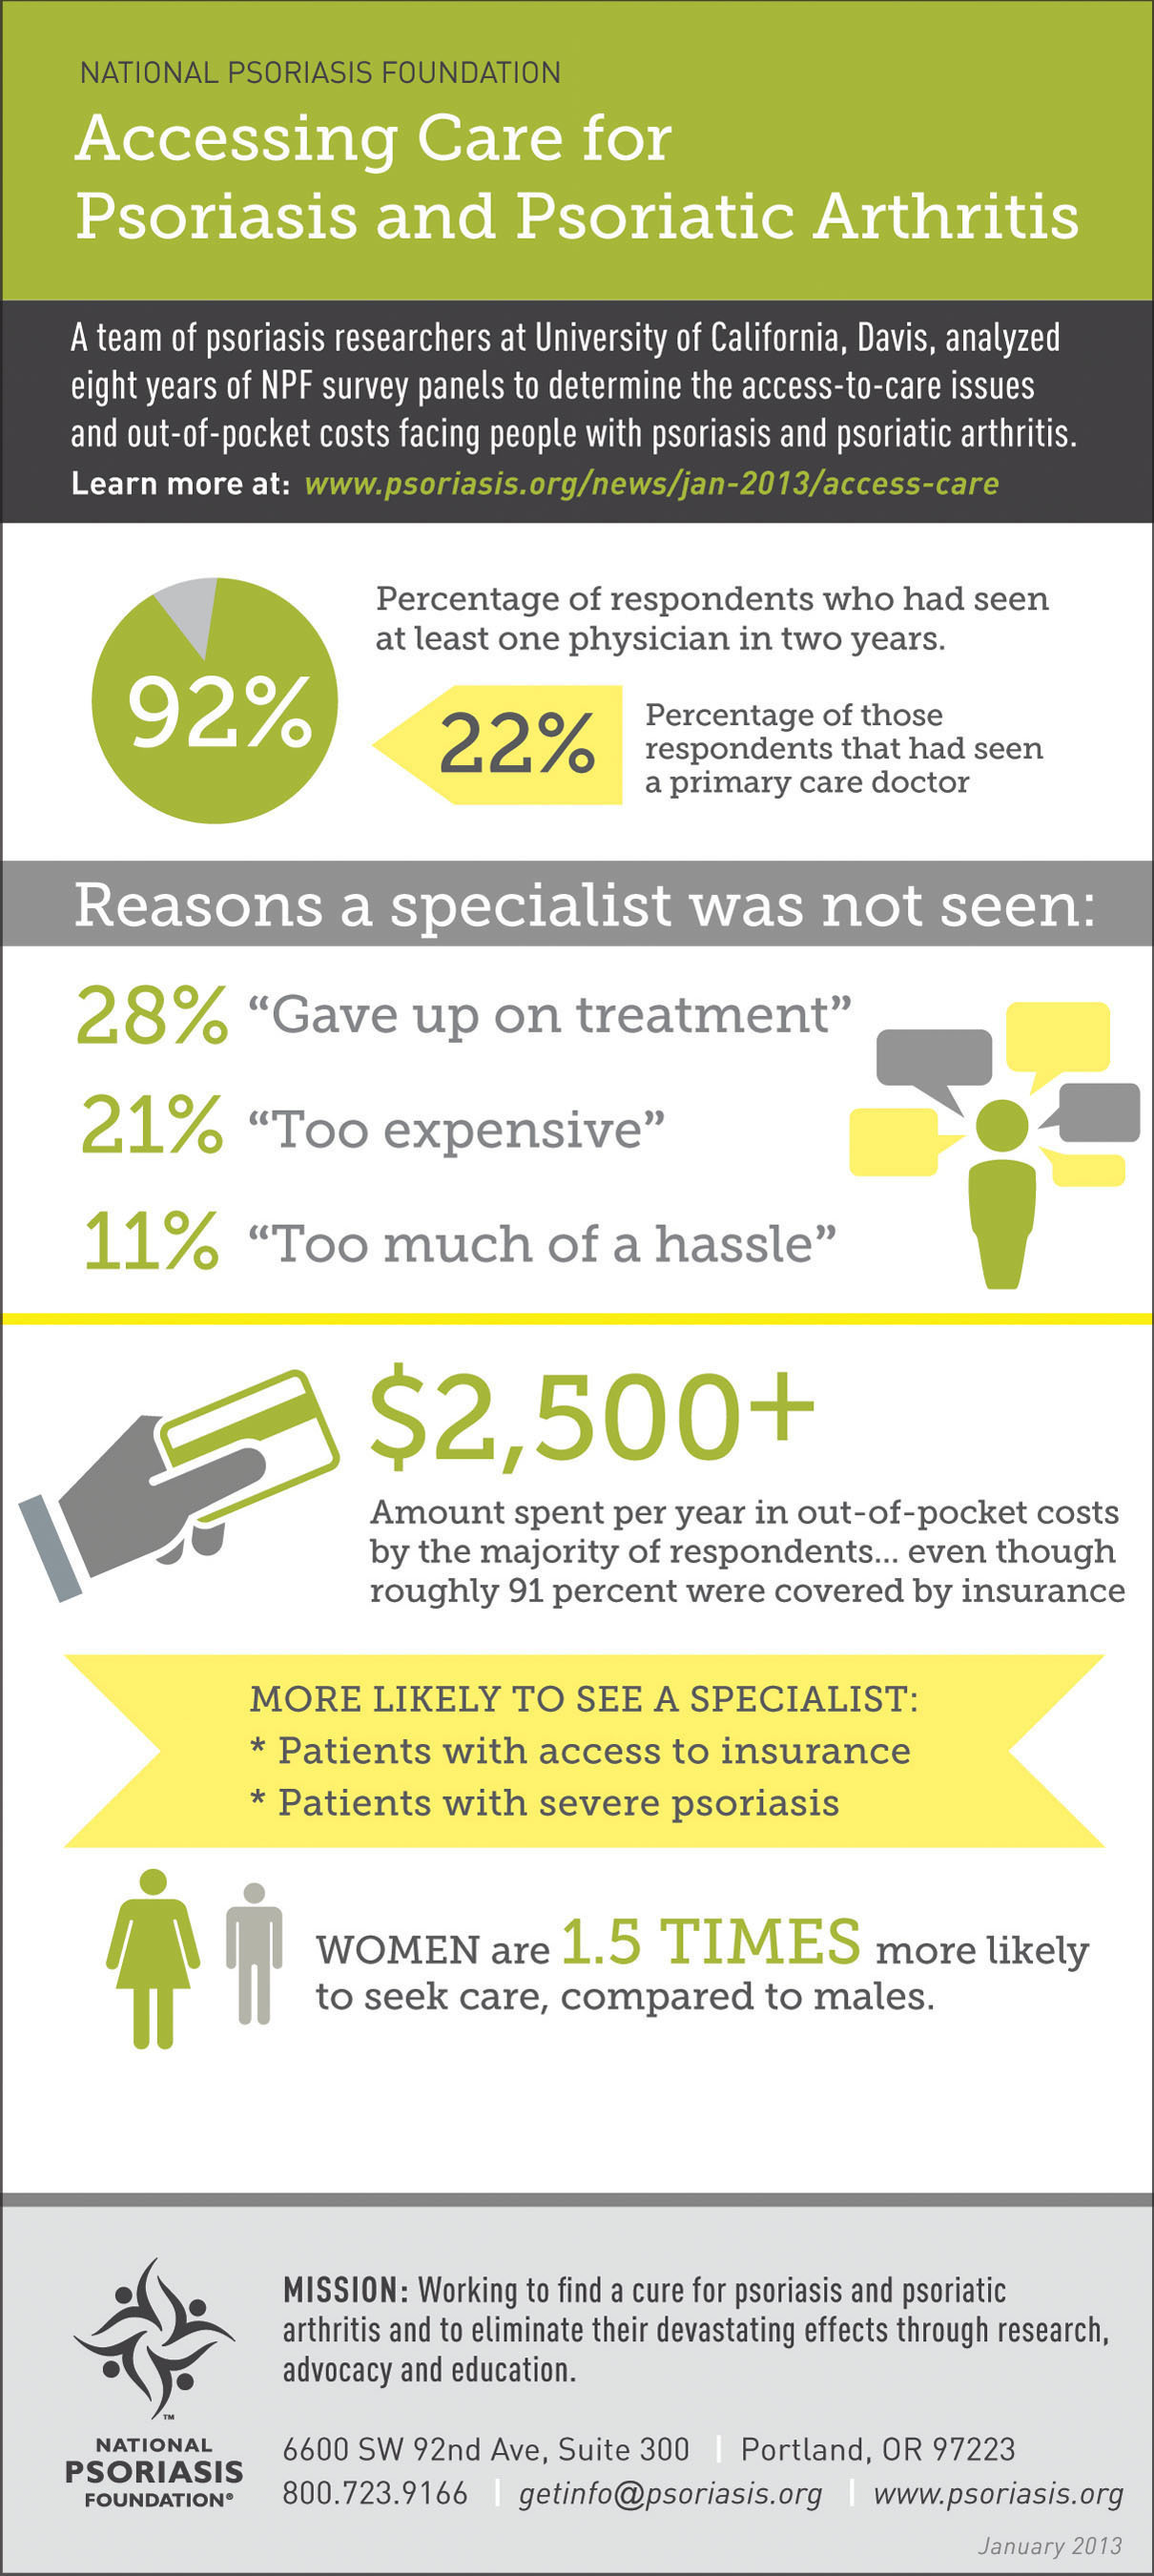 Americans with psoriasis and psoriatic arthritis spend thousands on health care